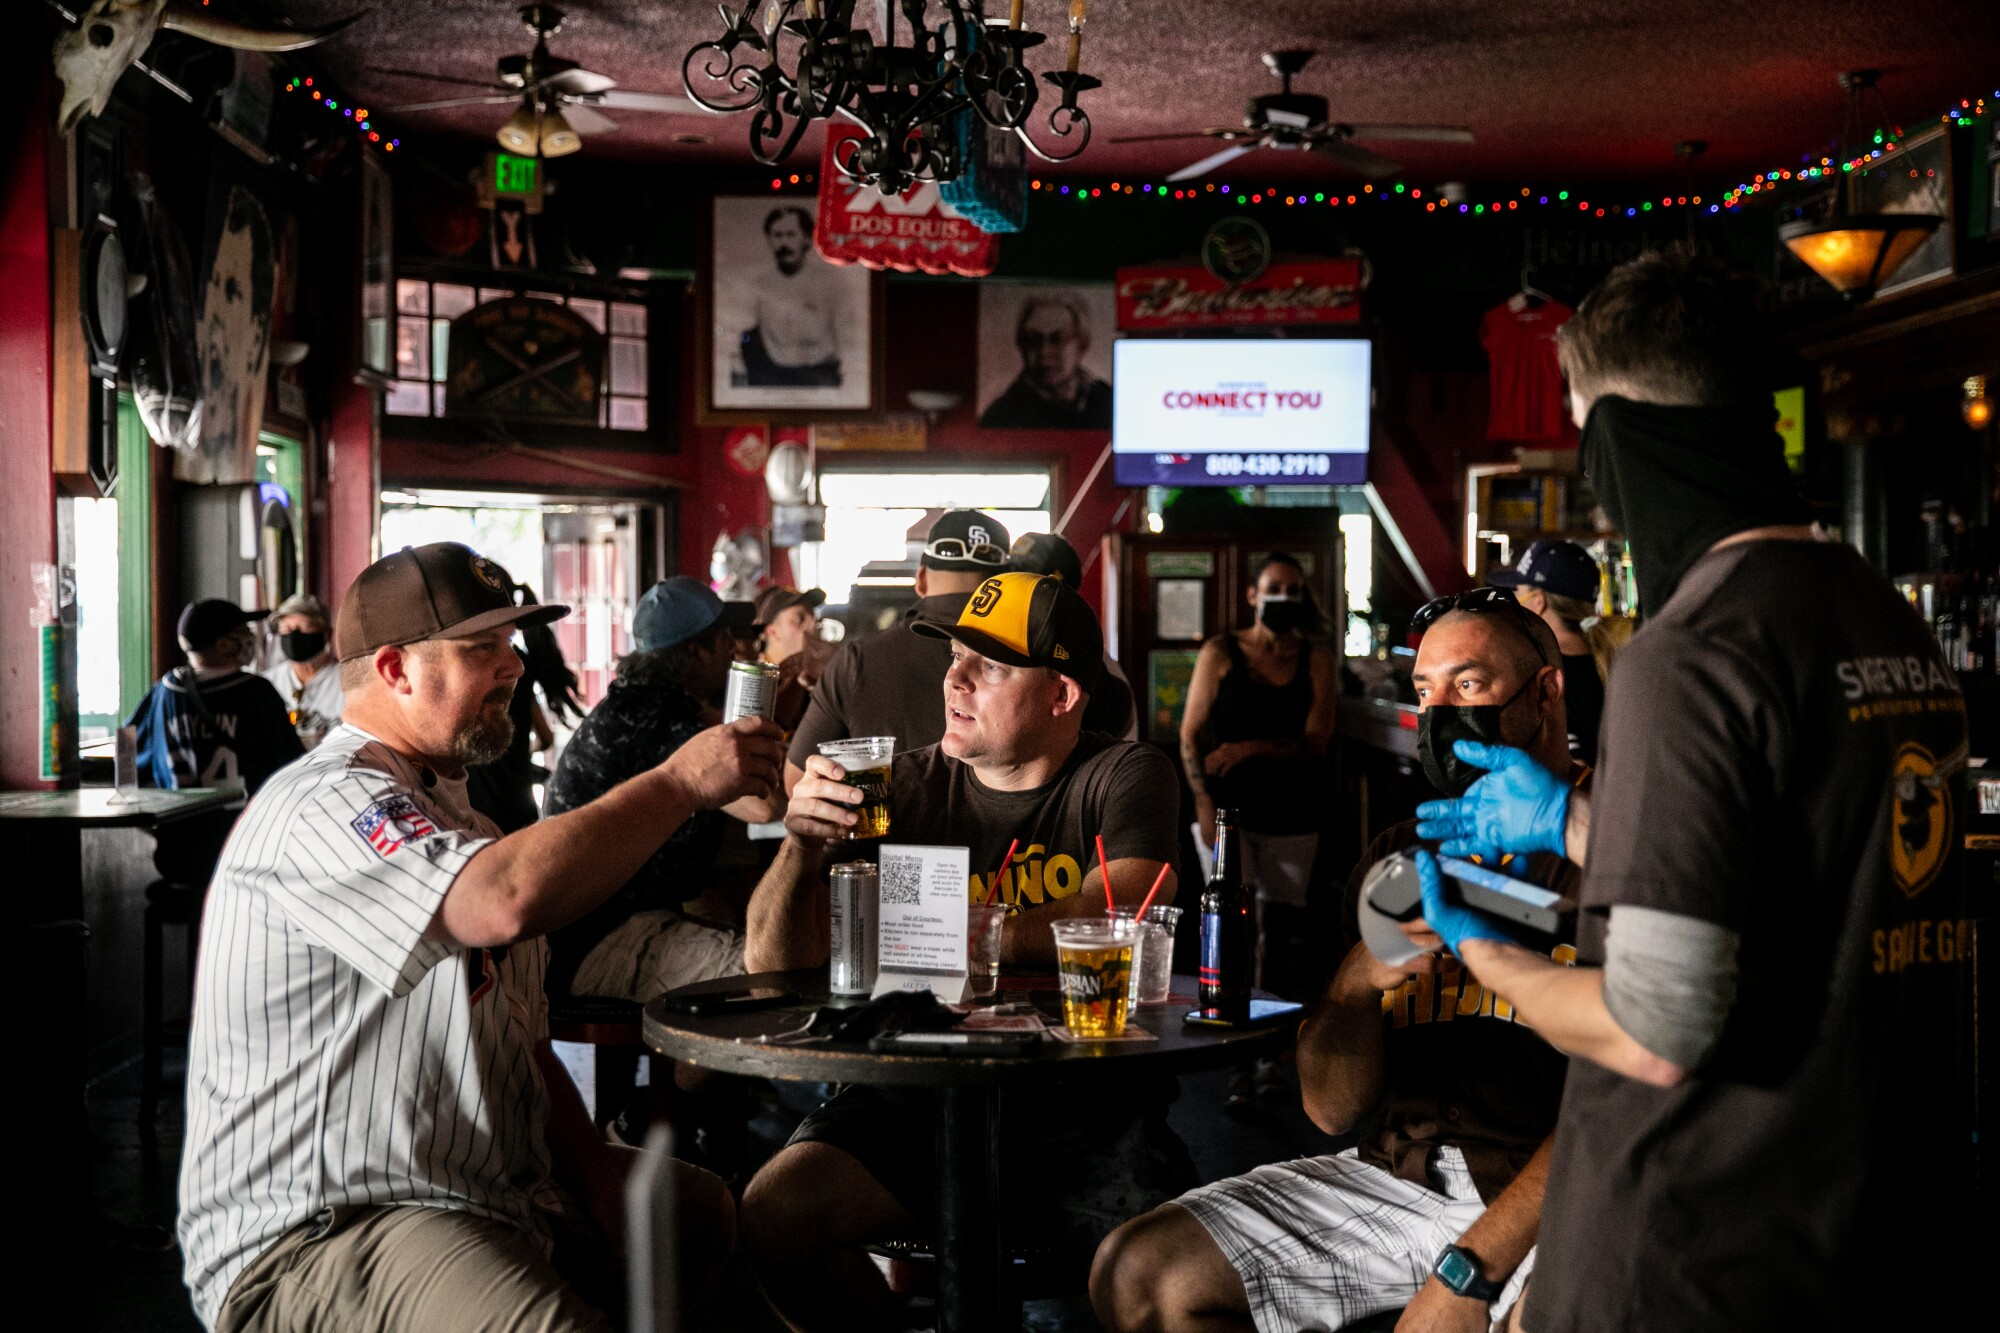 Robbie Deburn and Matt Lowery cheers their drinks at Tivoli Bar before the start of the Opening Day game.